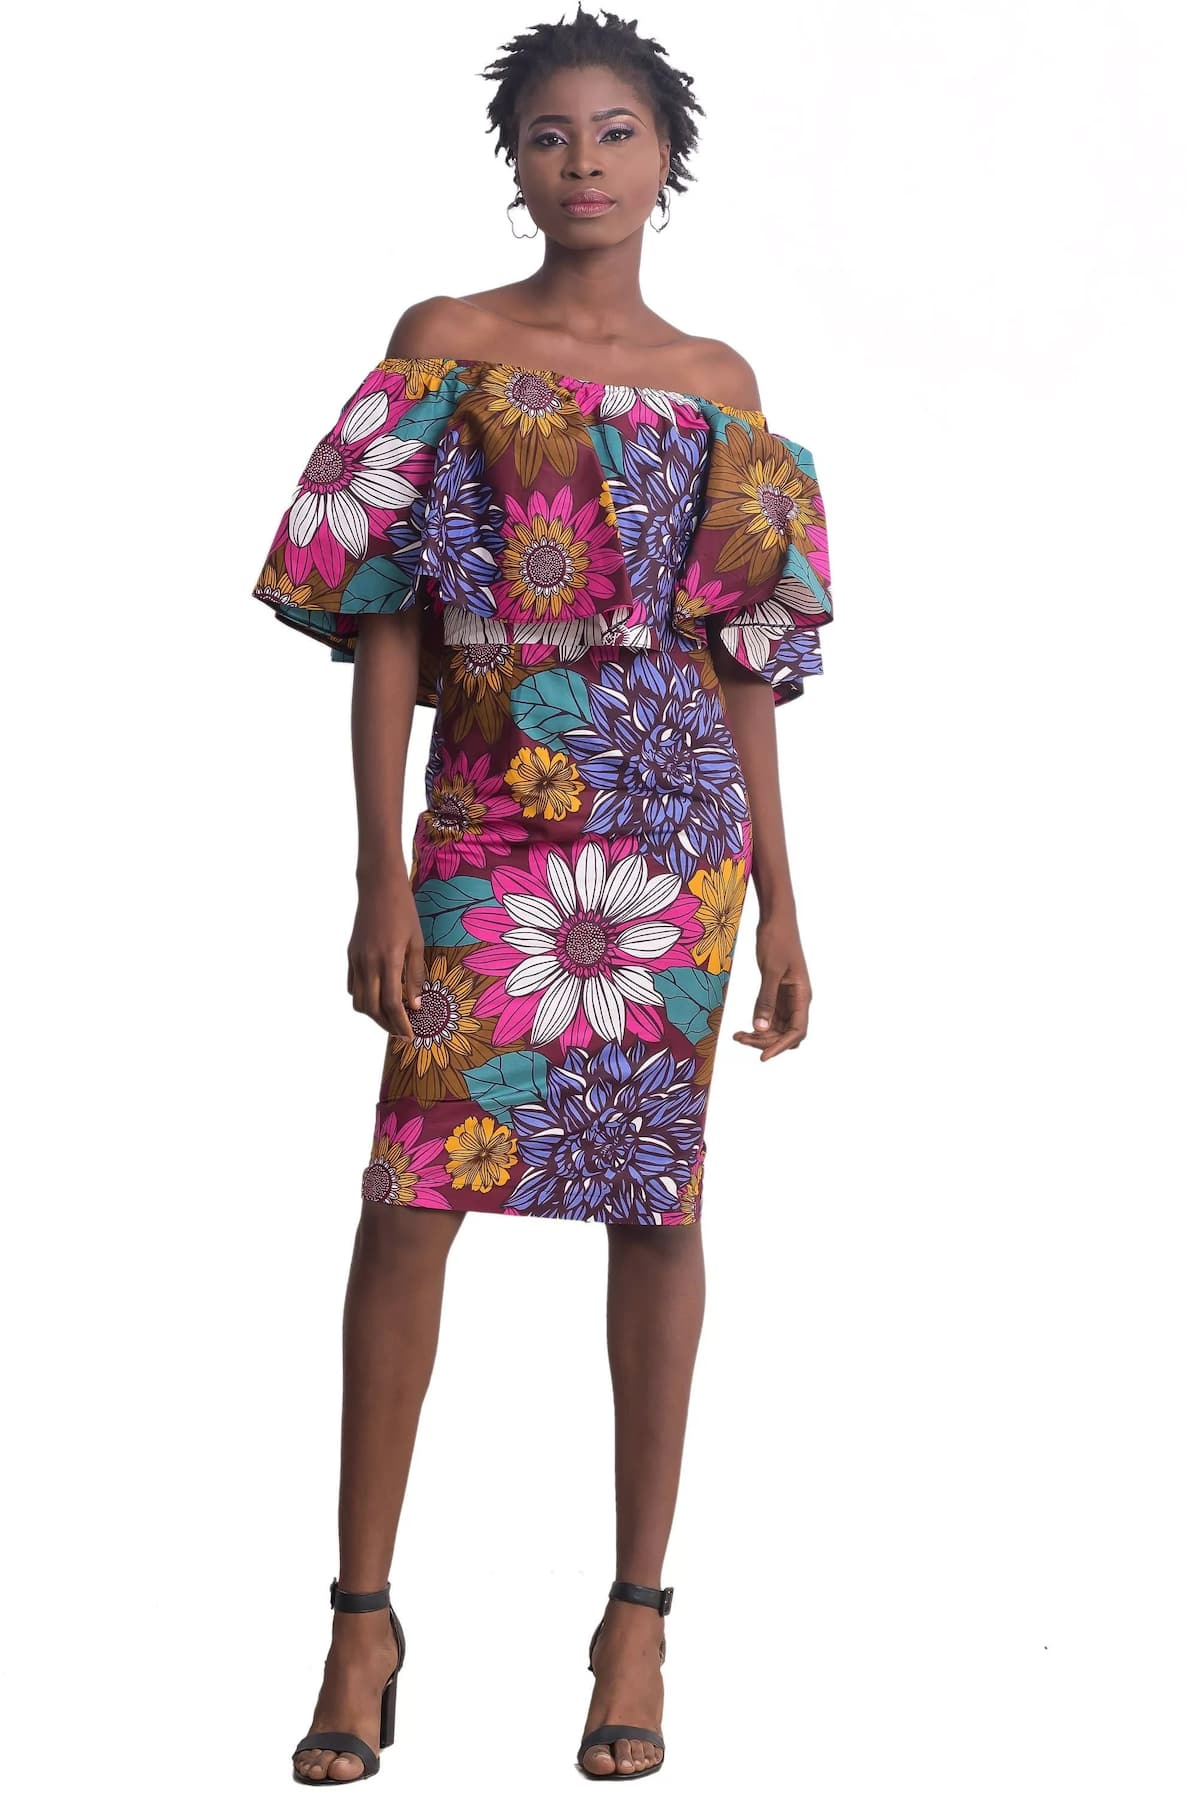 8390a458e African dress styles for young women ▷ Legit.ng